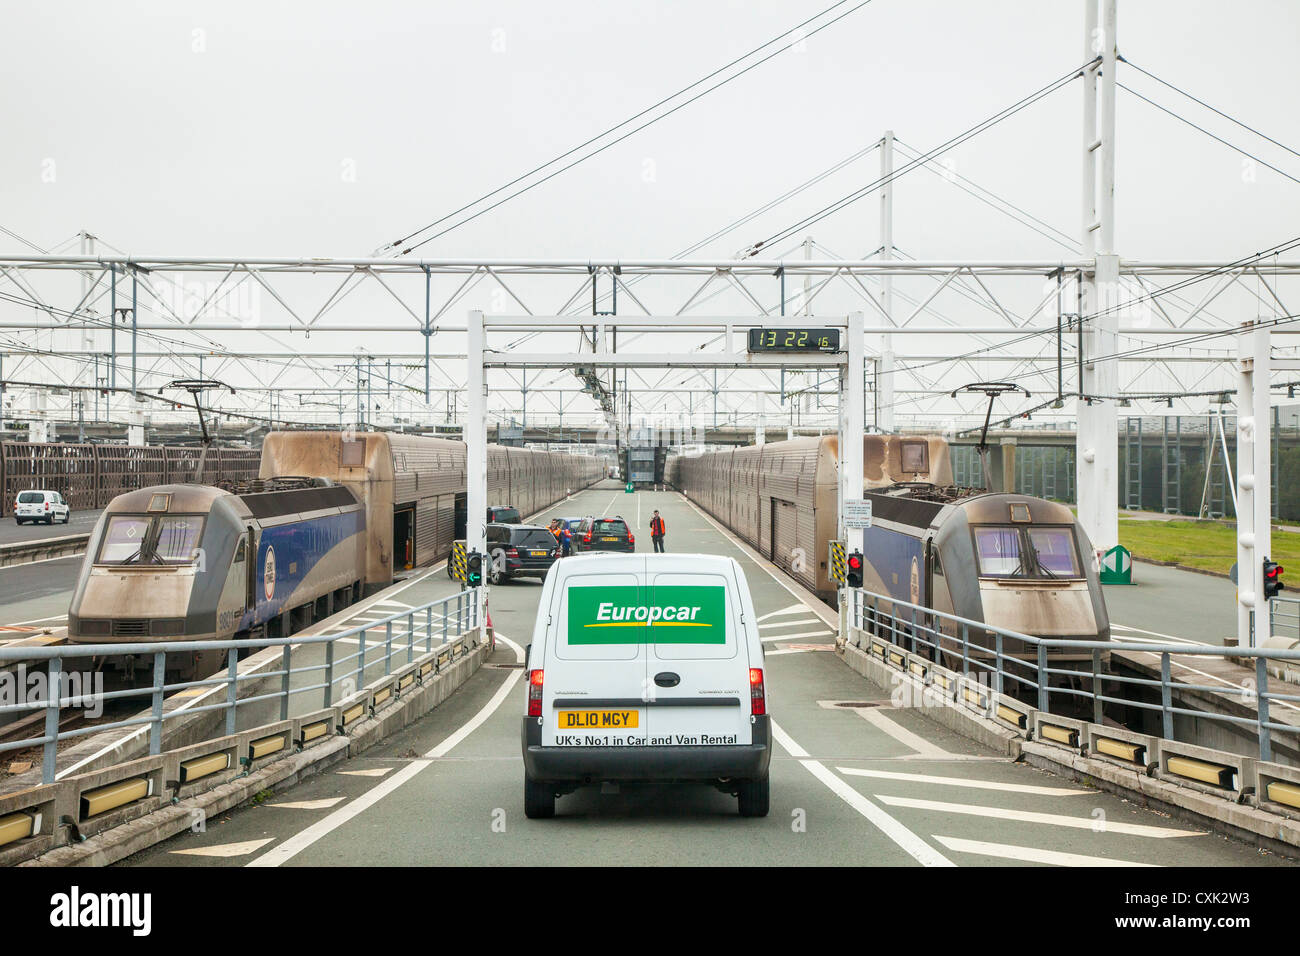 Vehicles boarding a Eurotunnel train at Folkestone, England - Stock Image